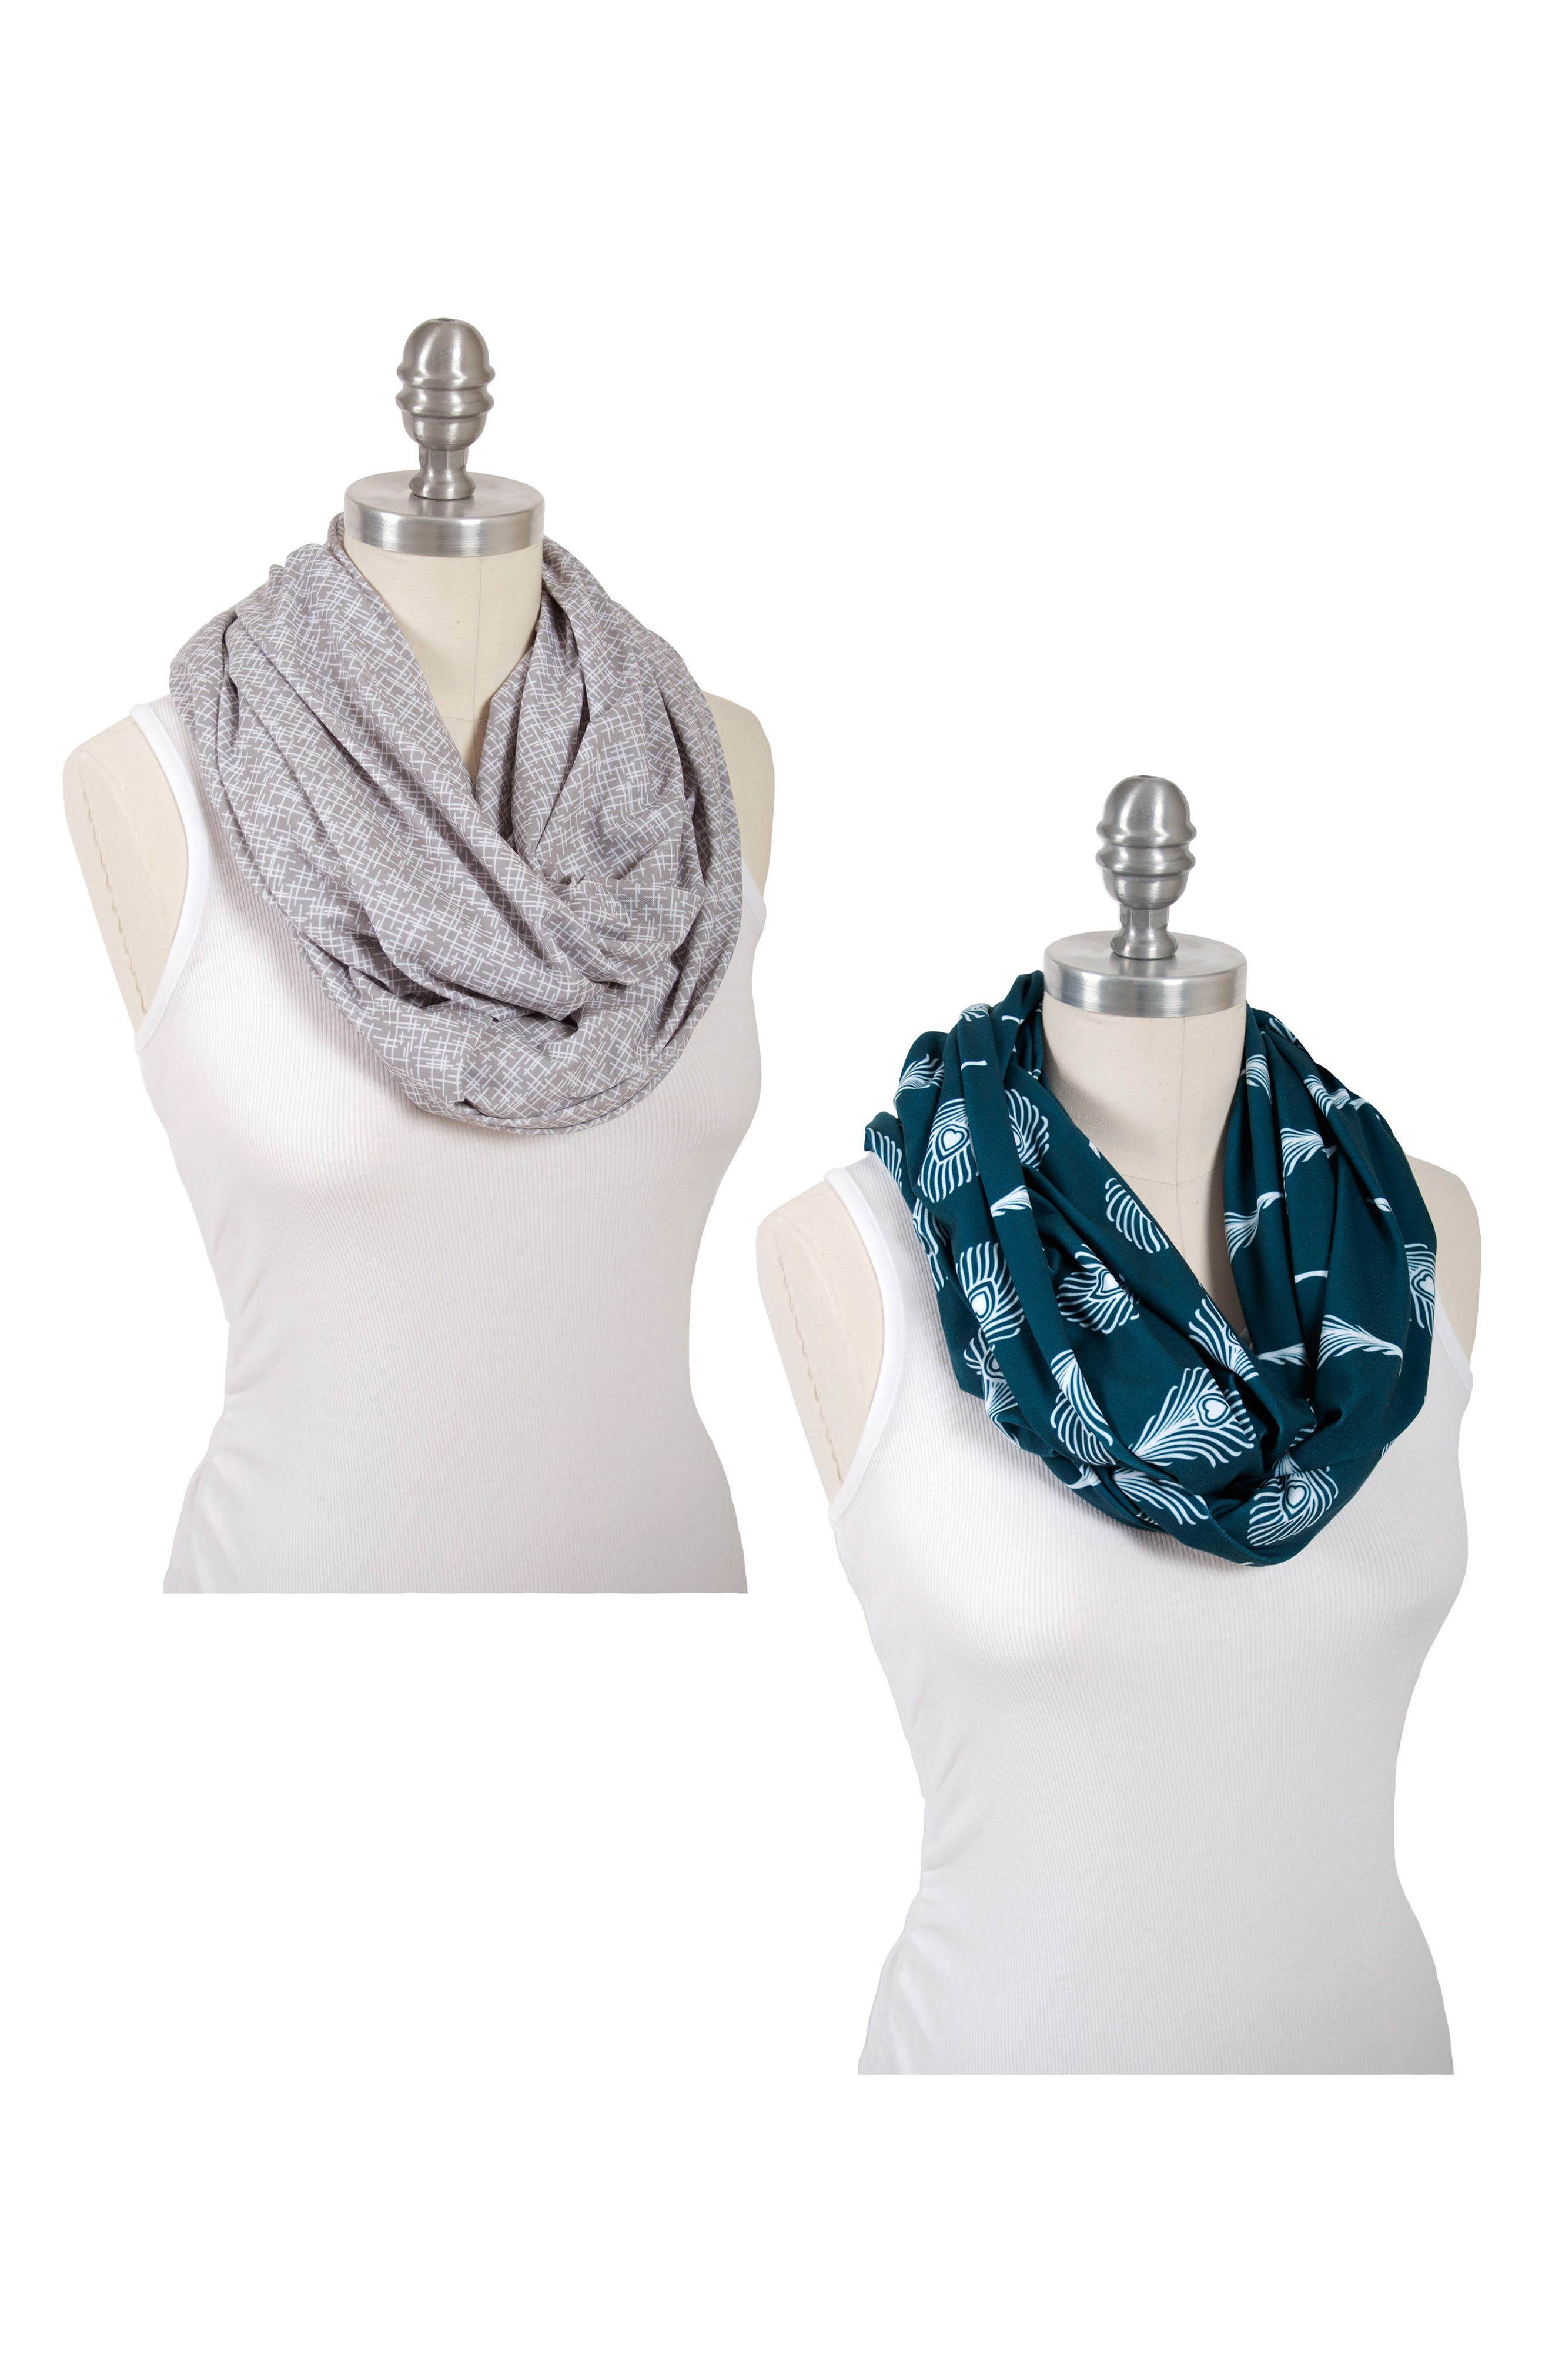 2-Pack Infinity Nursing Scarves,                             Main thumbnail 1, color,                             Mayura And Lexington